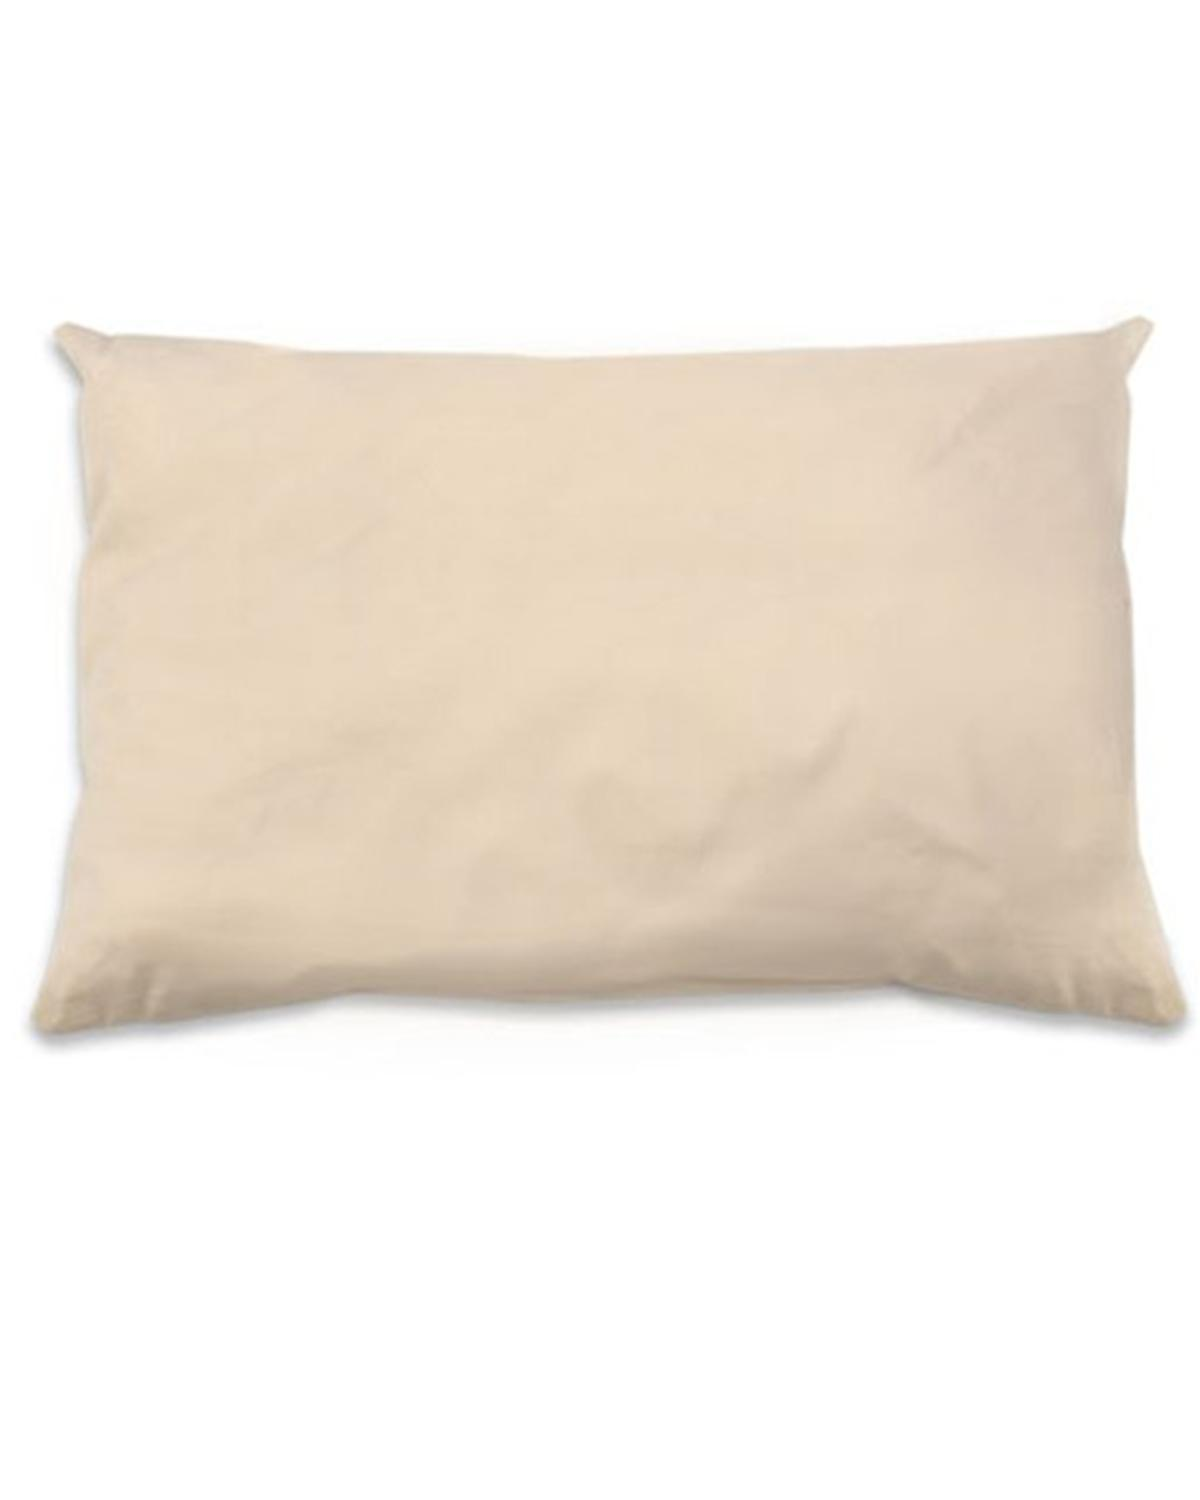 Little naturepedic room PLA Toddler Pillow in Natural